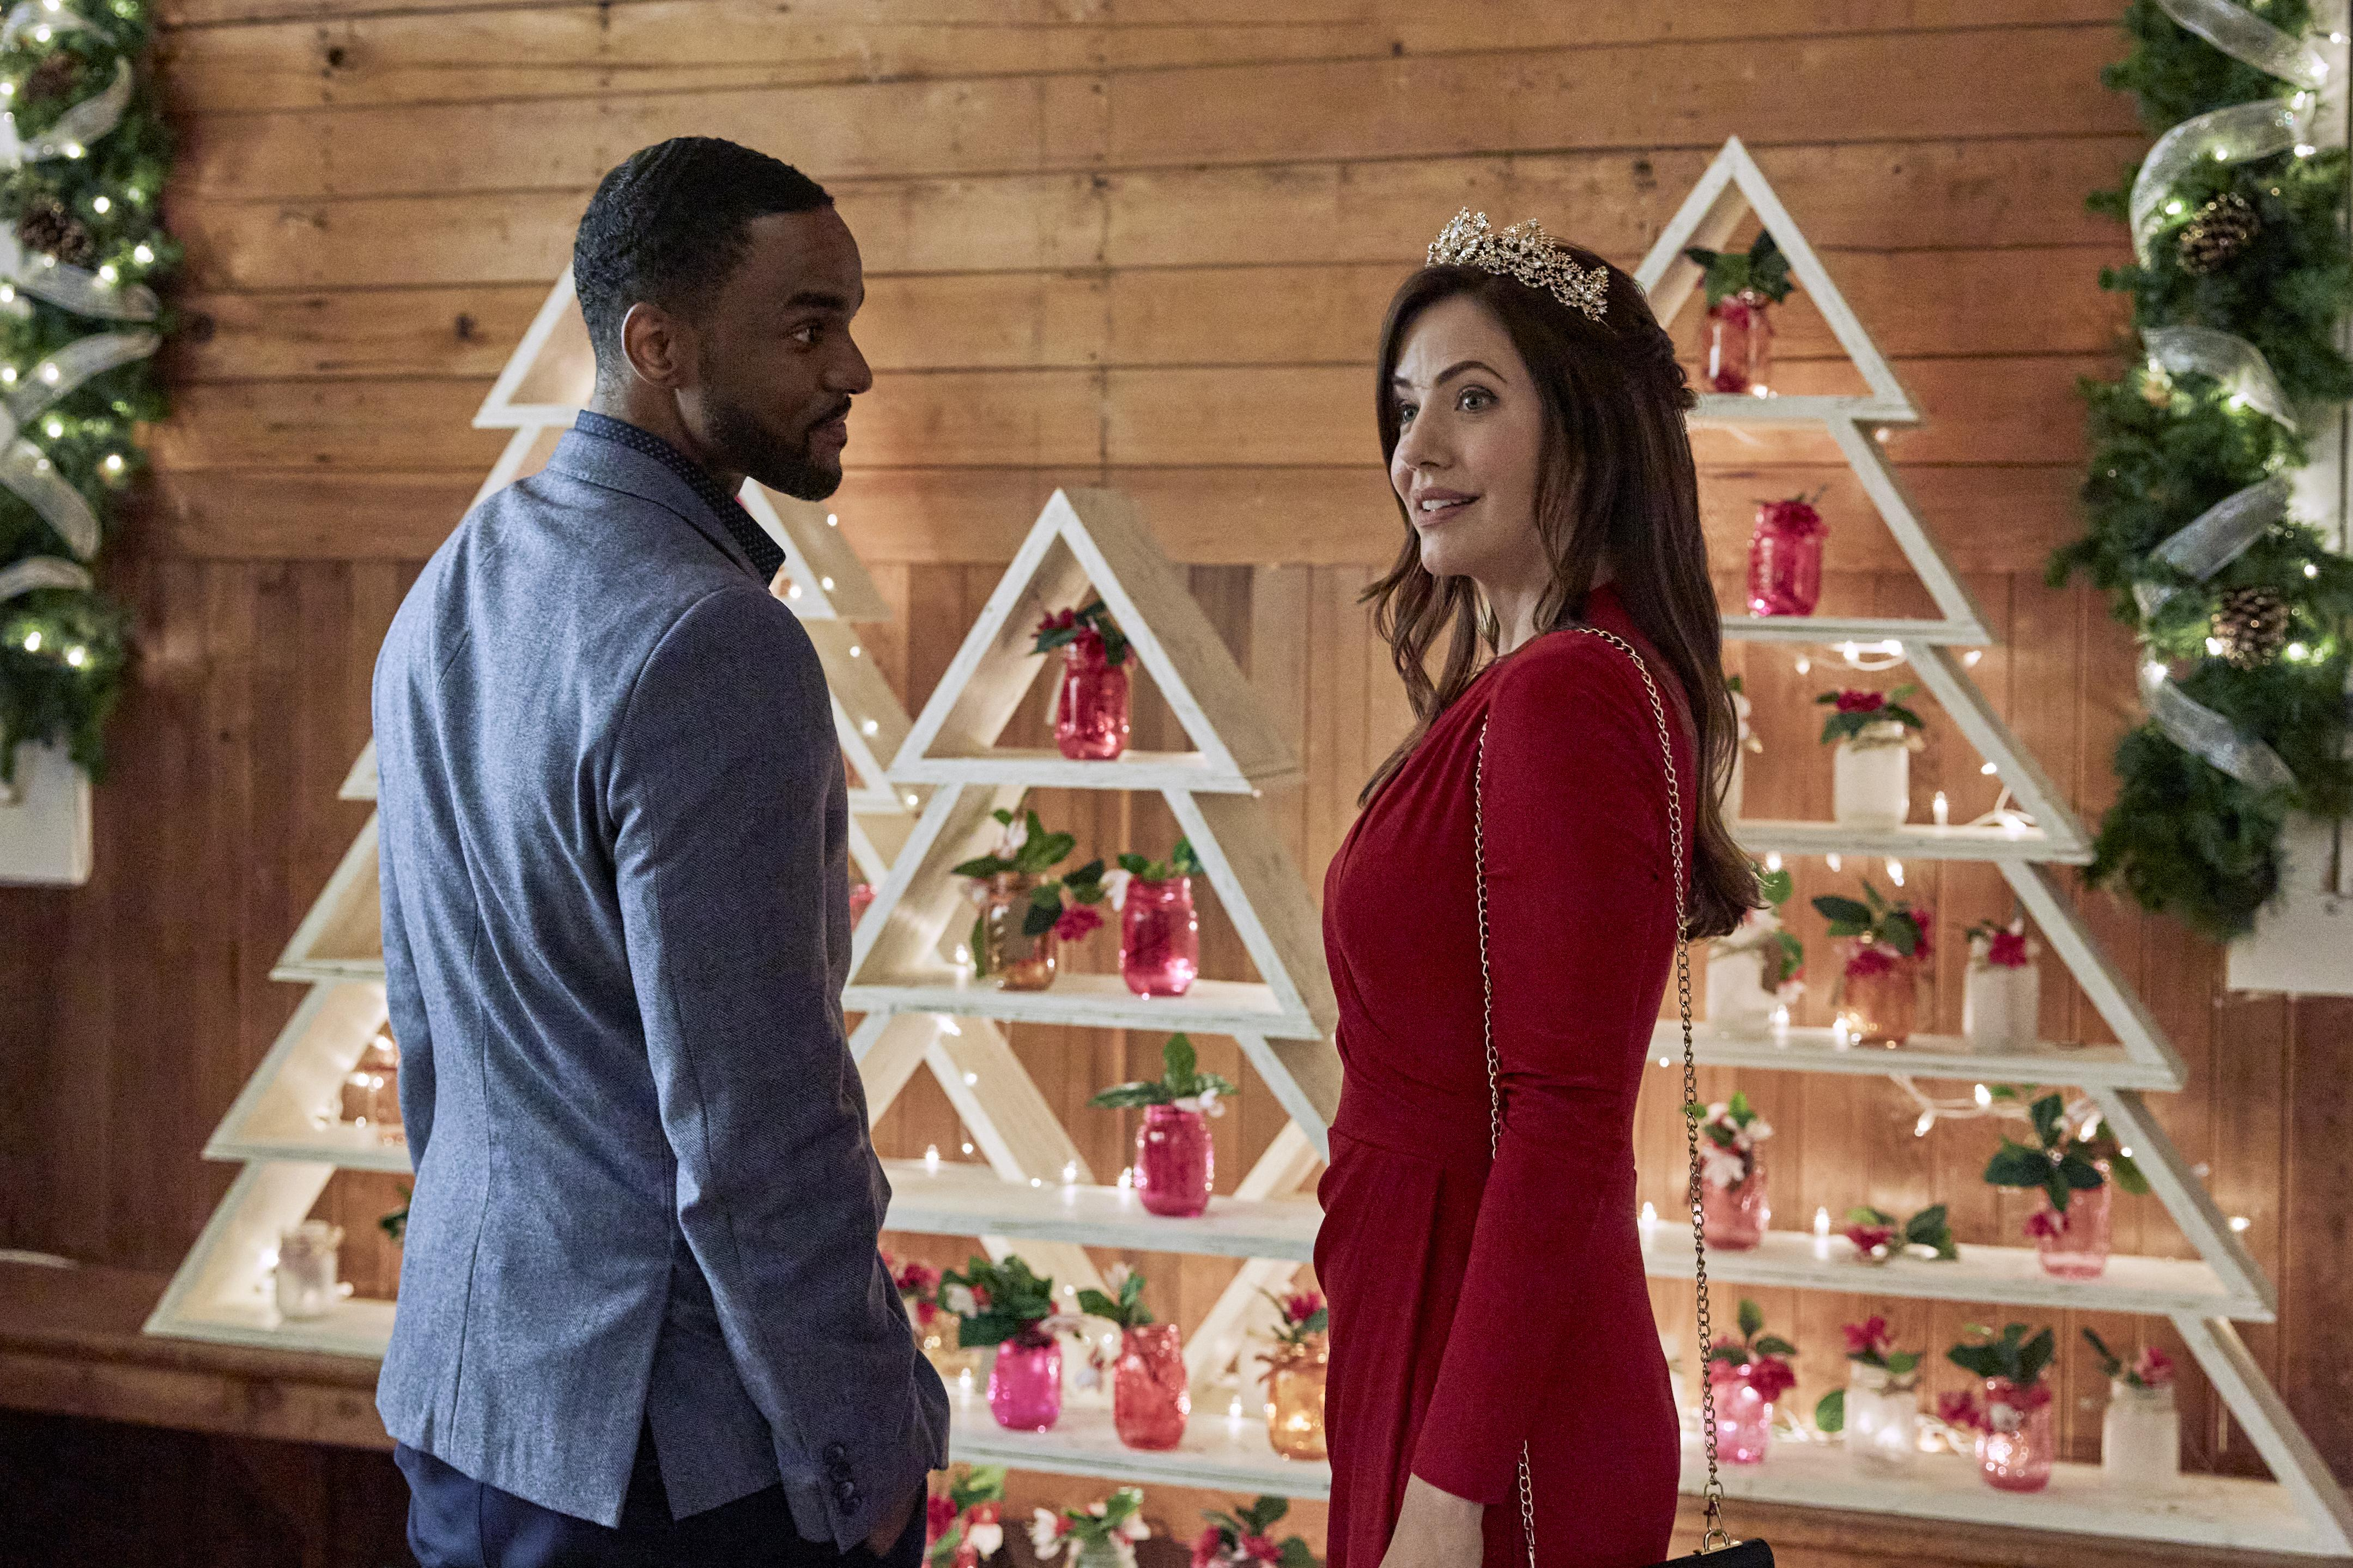 Starlight Christmas Ebent 2020 New Hallmark Christmas 2020 Movies Schedule: Countdown To